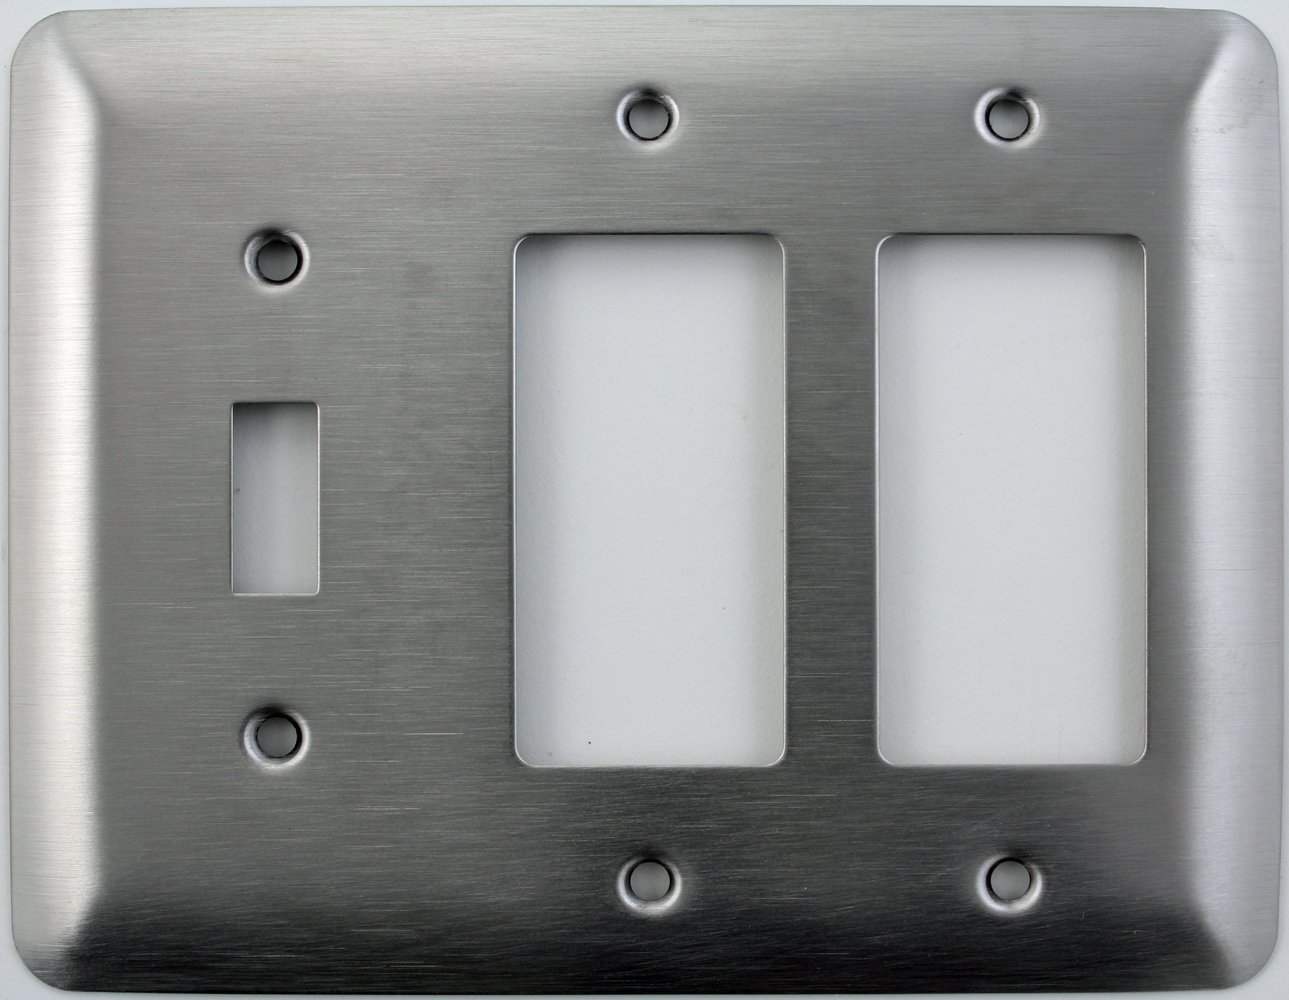 Mulberry Princess Style Satin Stainless Steel 3 Gang Switch Plate - 1 Toggle Light Switch Opening 2 GFI/Rocker Openings